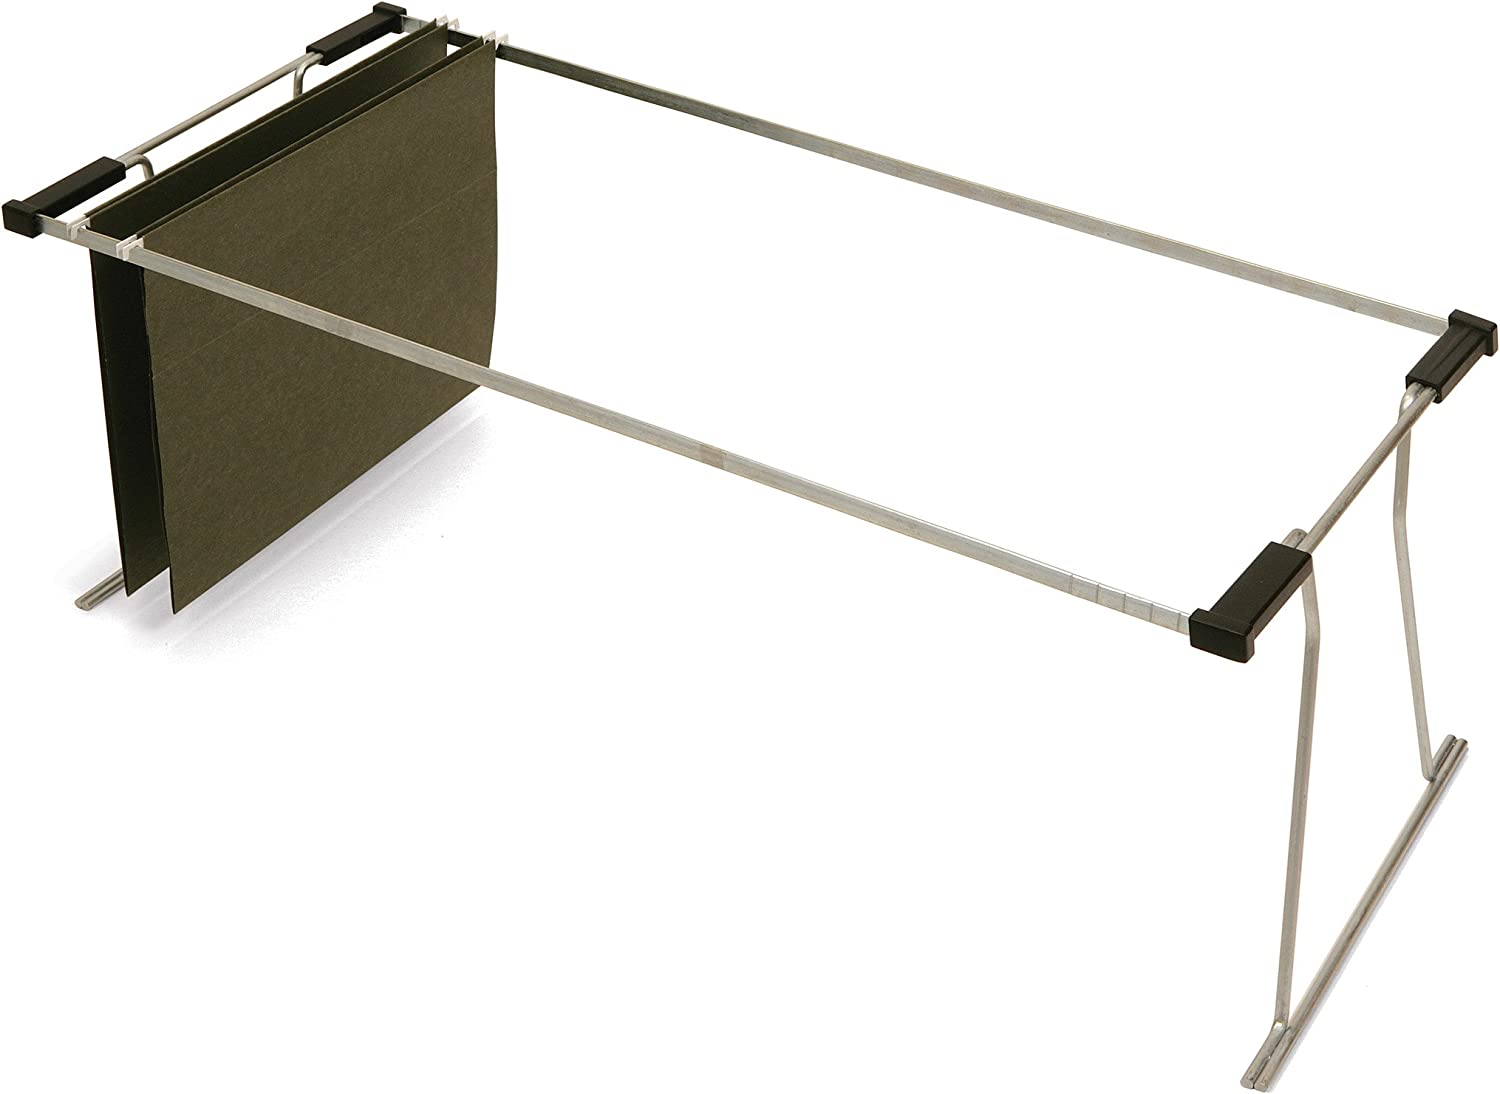 Officemate Universal File Frame, Letter/Legal Size, Steel, 12 x 27 x 9 Inches (91997) : File Folder Racks : Office Products